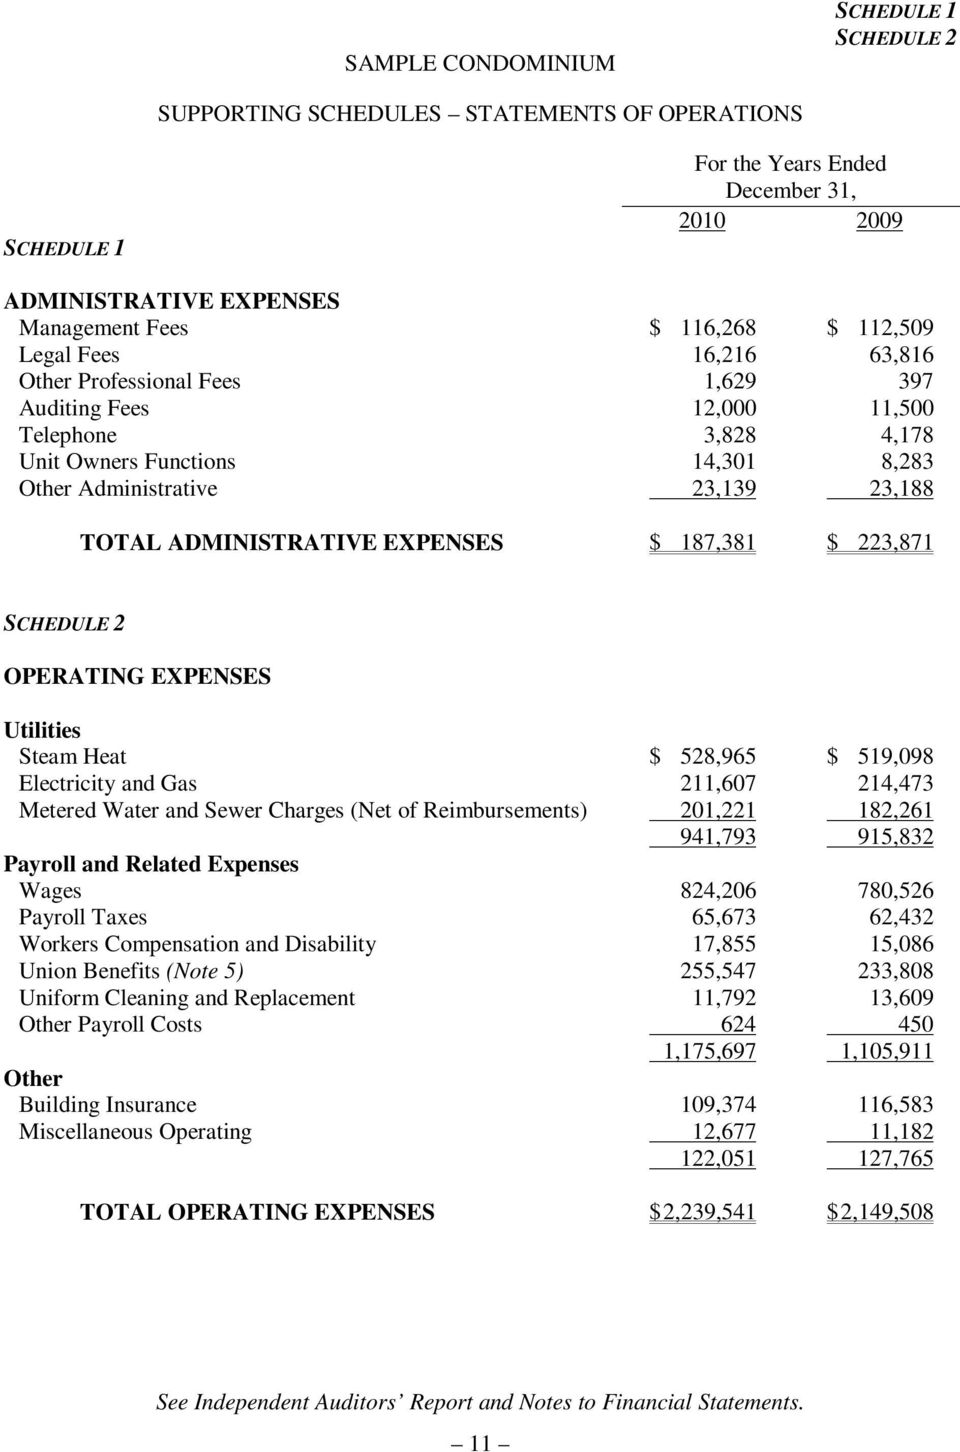 187,381 $ 223,871 SCHEDULE 2 OPERATING EXPENSES Utilities Steam Heat $ 528,965 $ 519,098 Electricity and Gas 211,607 214,473 Metered Water and Sewer Charges (Net of Reimbursements) 201,221 182,261